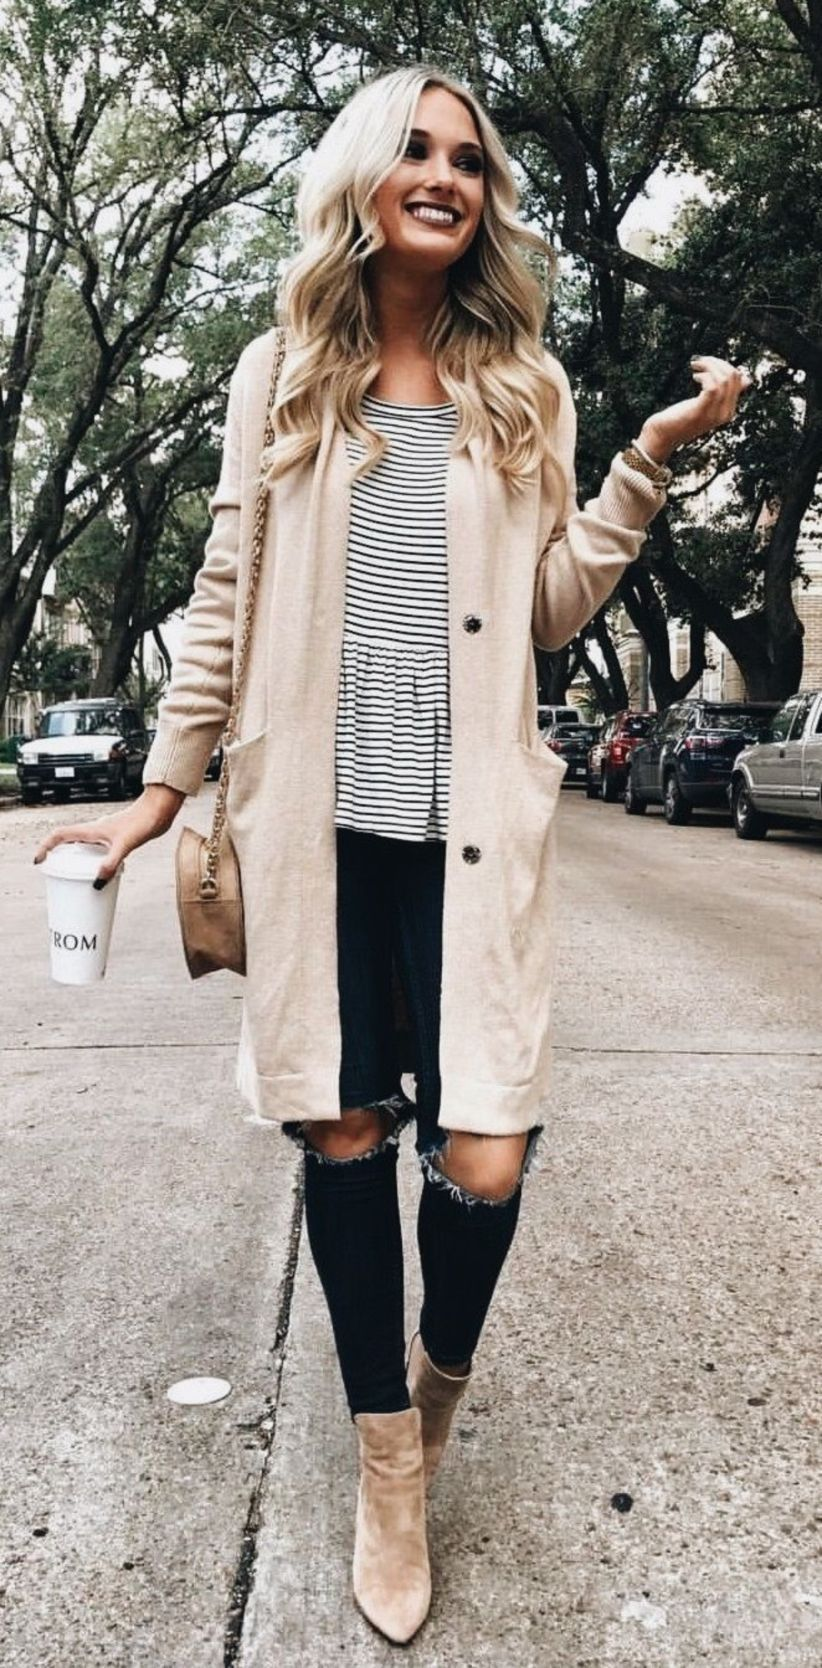 e341b9bd0 Stunning 41 Warm Fall Outfits Ideas with Lightweight Cardigan  http://vattire.com